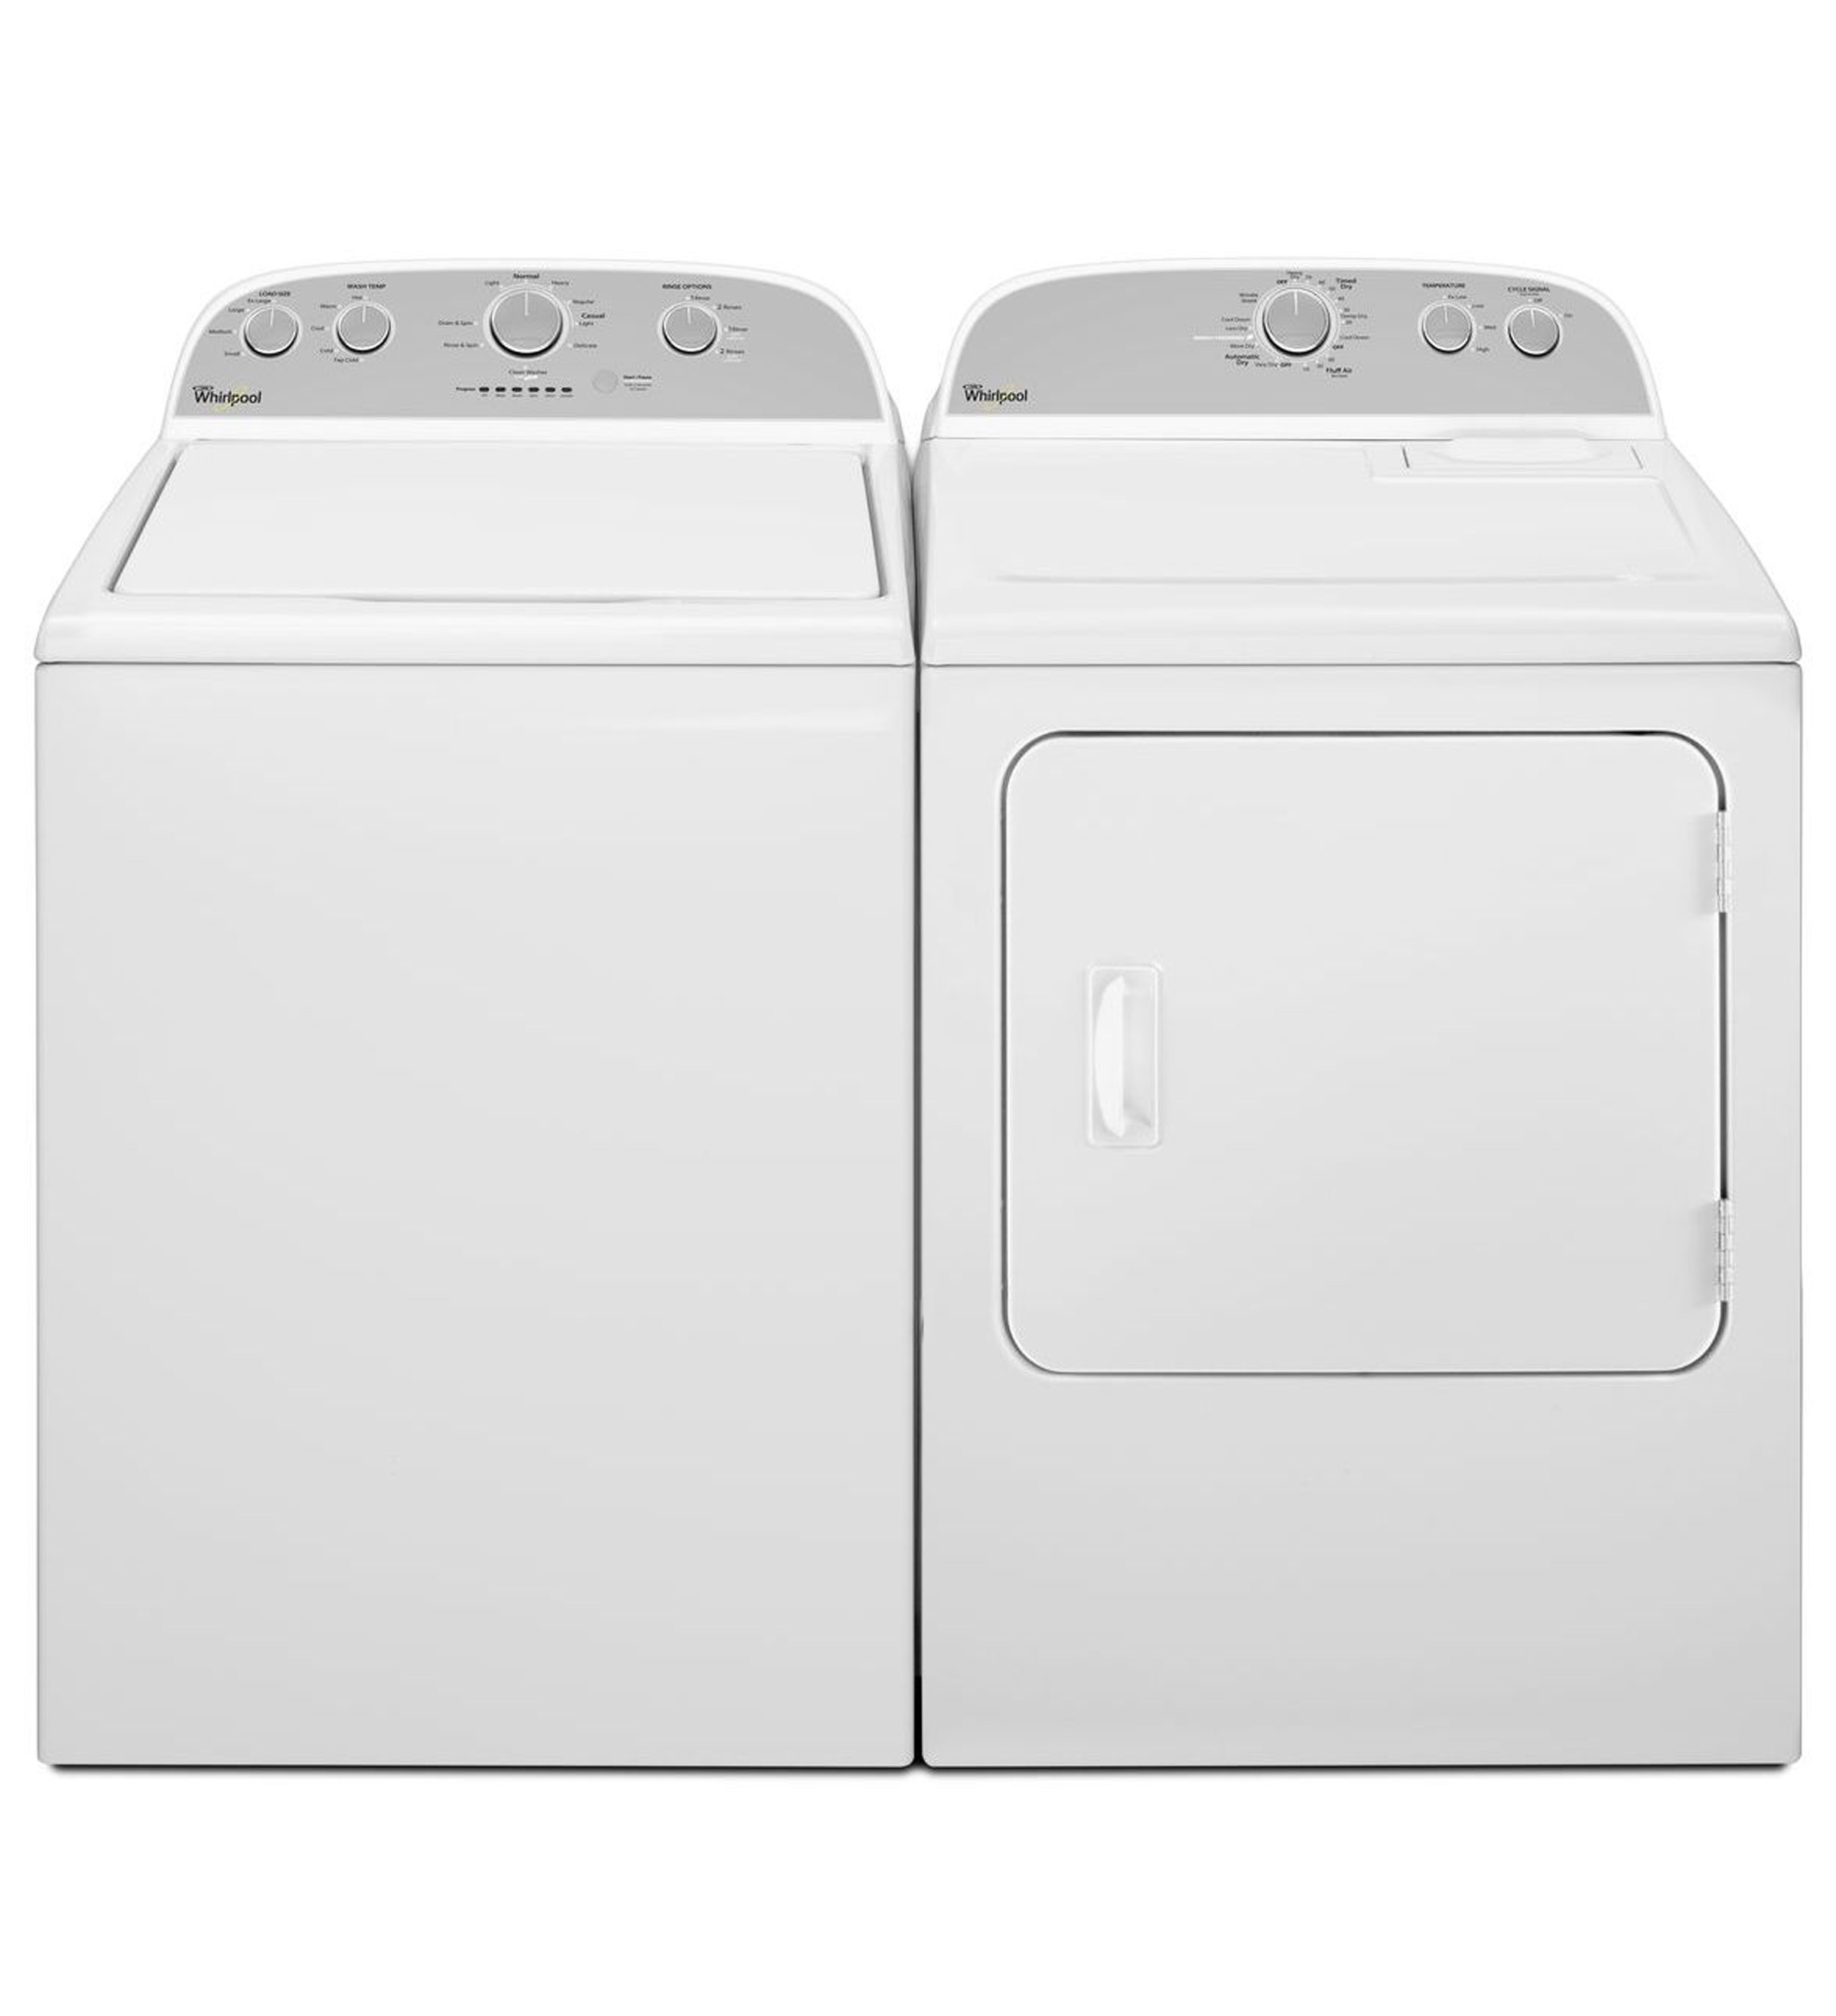 Whirlpool 3.4 cu. ft. White Top Load Washer & 6.5 cu. ft. White Dryer